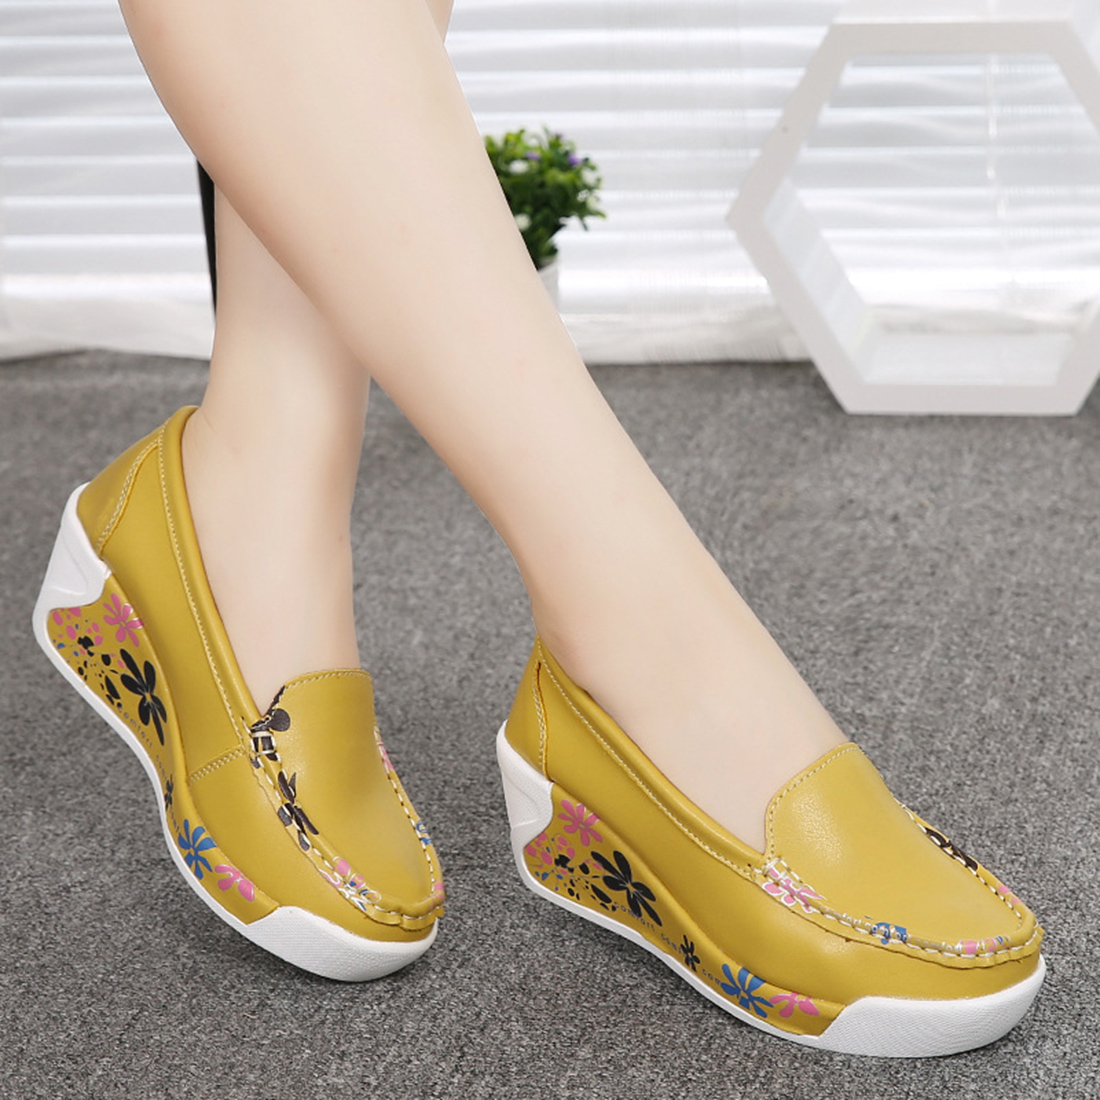 Hot Sale New Women Genuine Leather Platform Shoes Wedges White nurse shoes Lady casual Shoes Swing mother shoes size 35-40